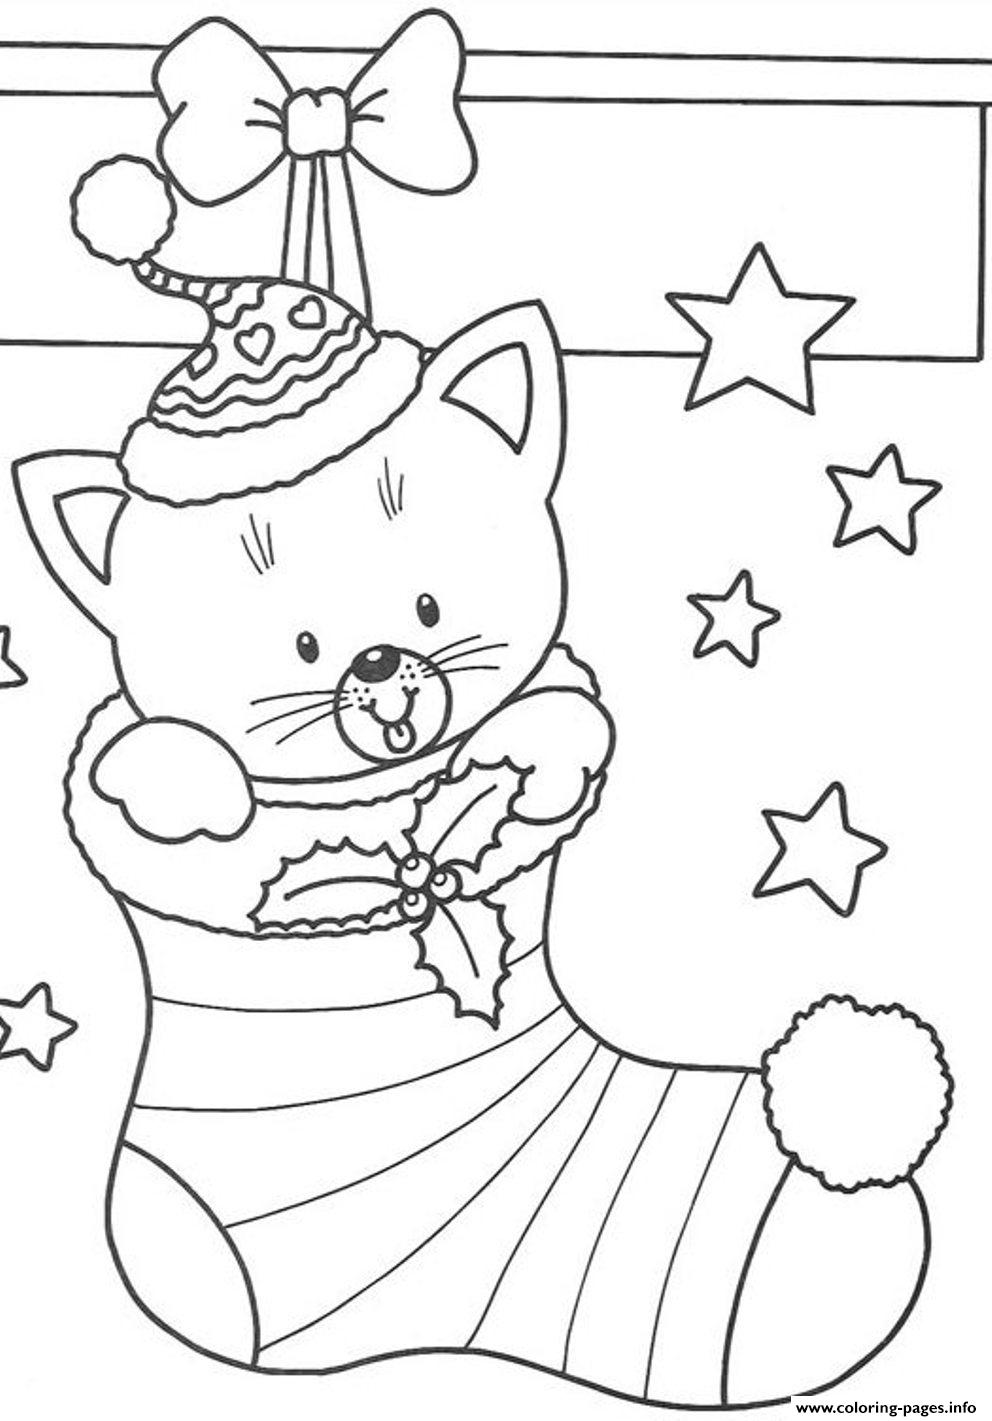 - Free S Christmas Cat In Stocking8a58 Coloring Pages Printable